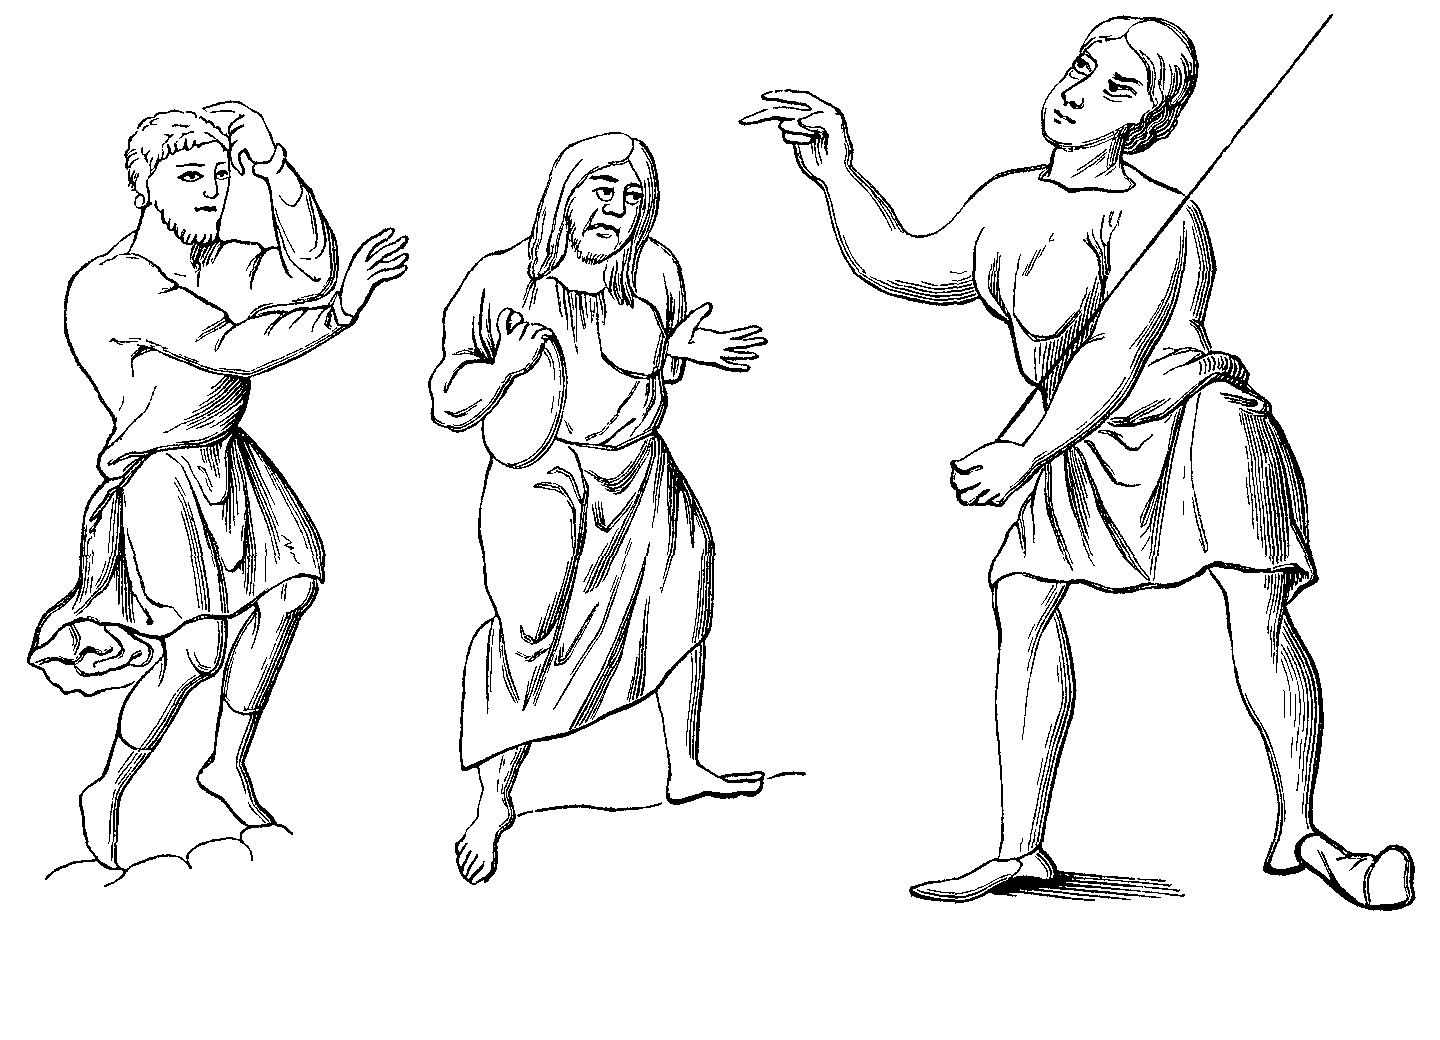 [Image: Costumes_of_Slaves_or_Serfs_from_the_Six...turies.png]